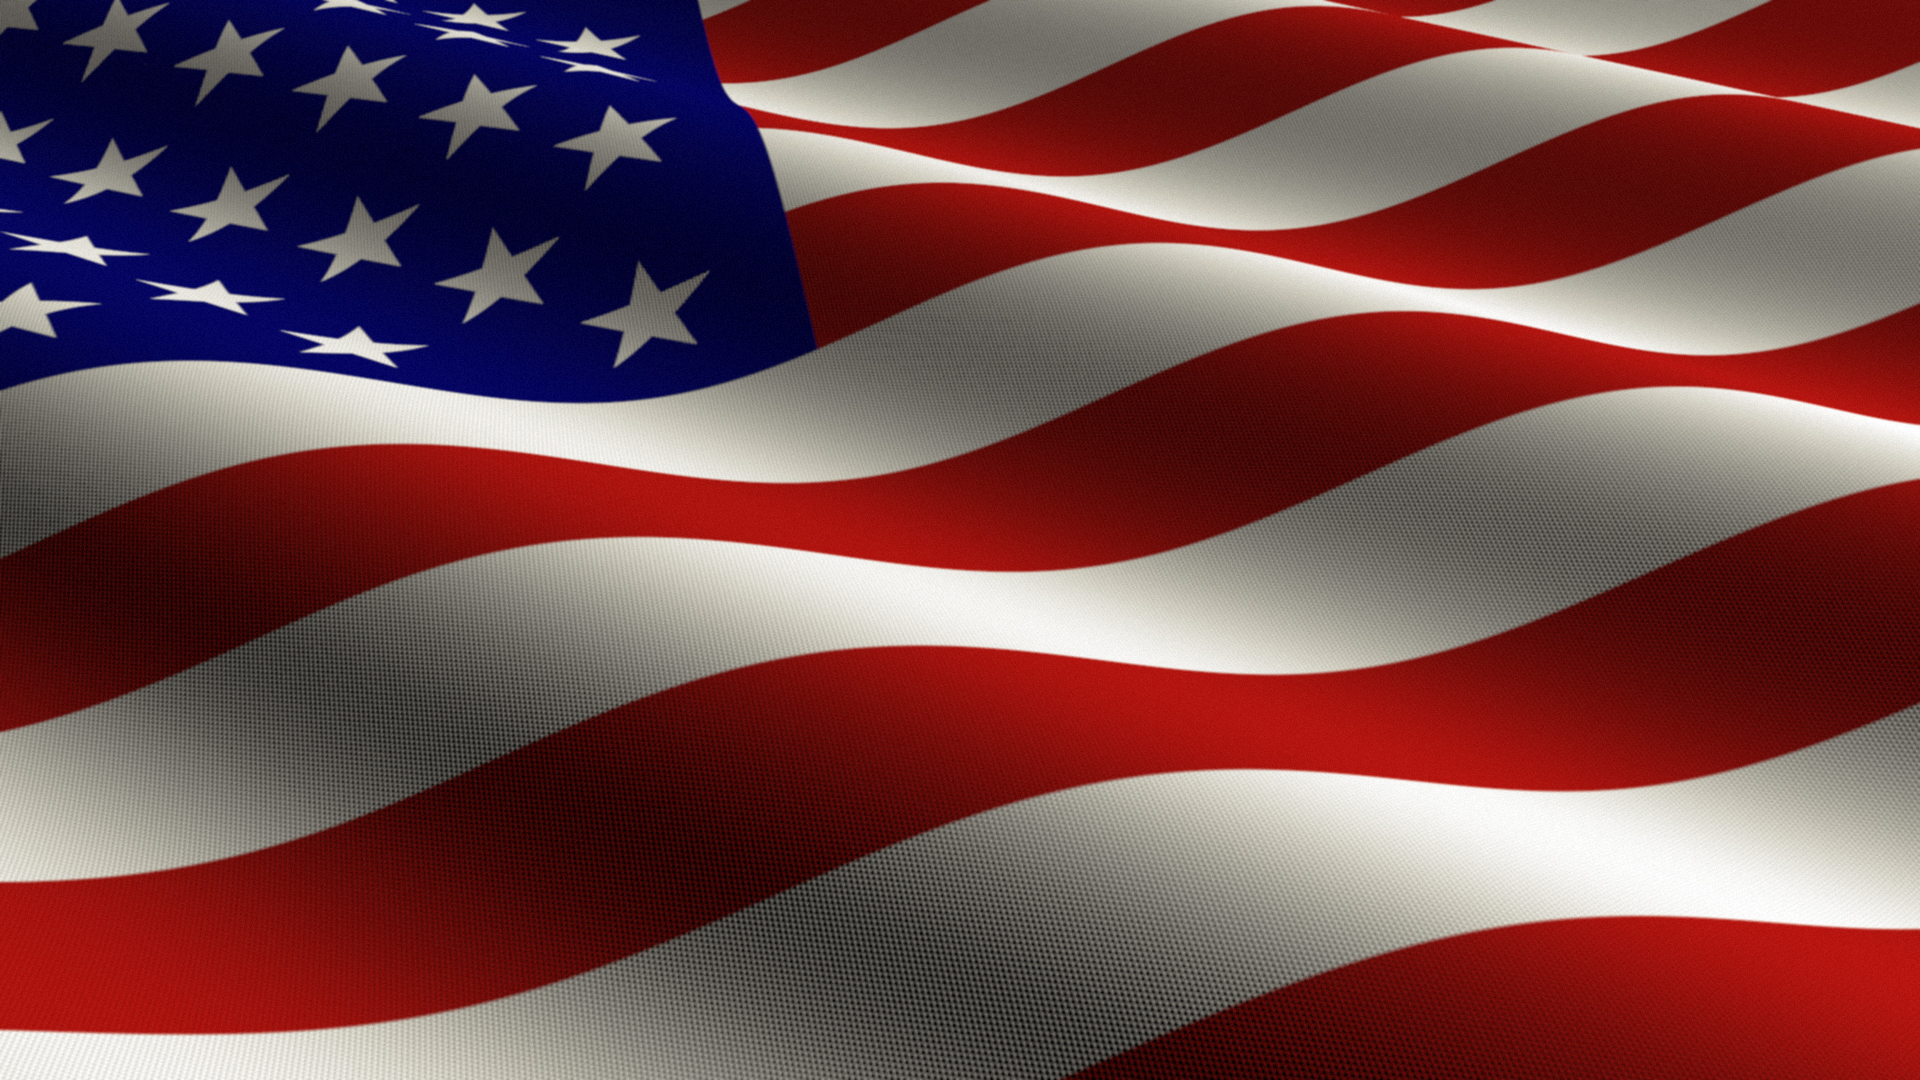 American Flag Download Clip Art Clip Art on 1920x1080